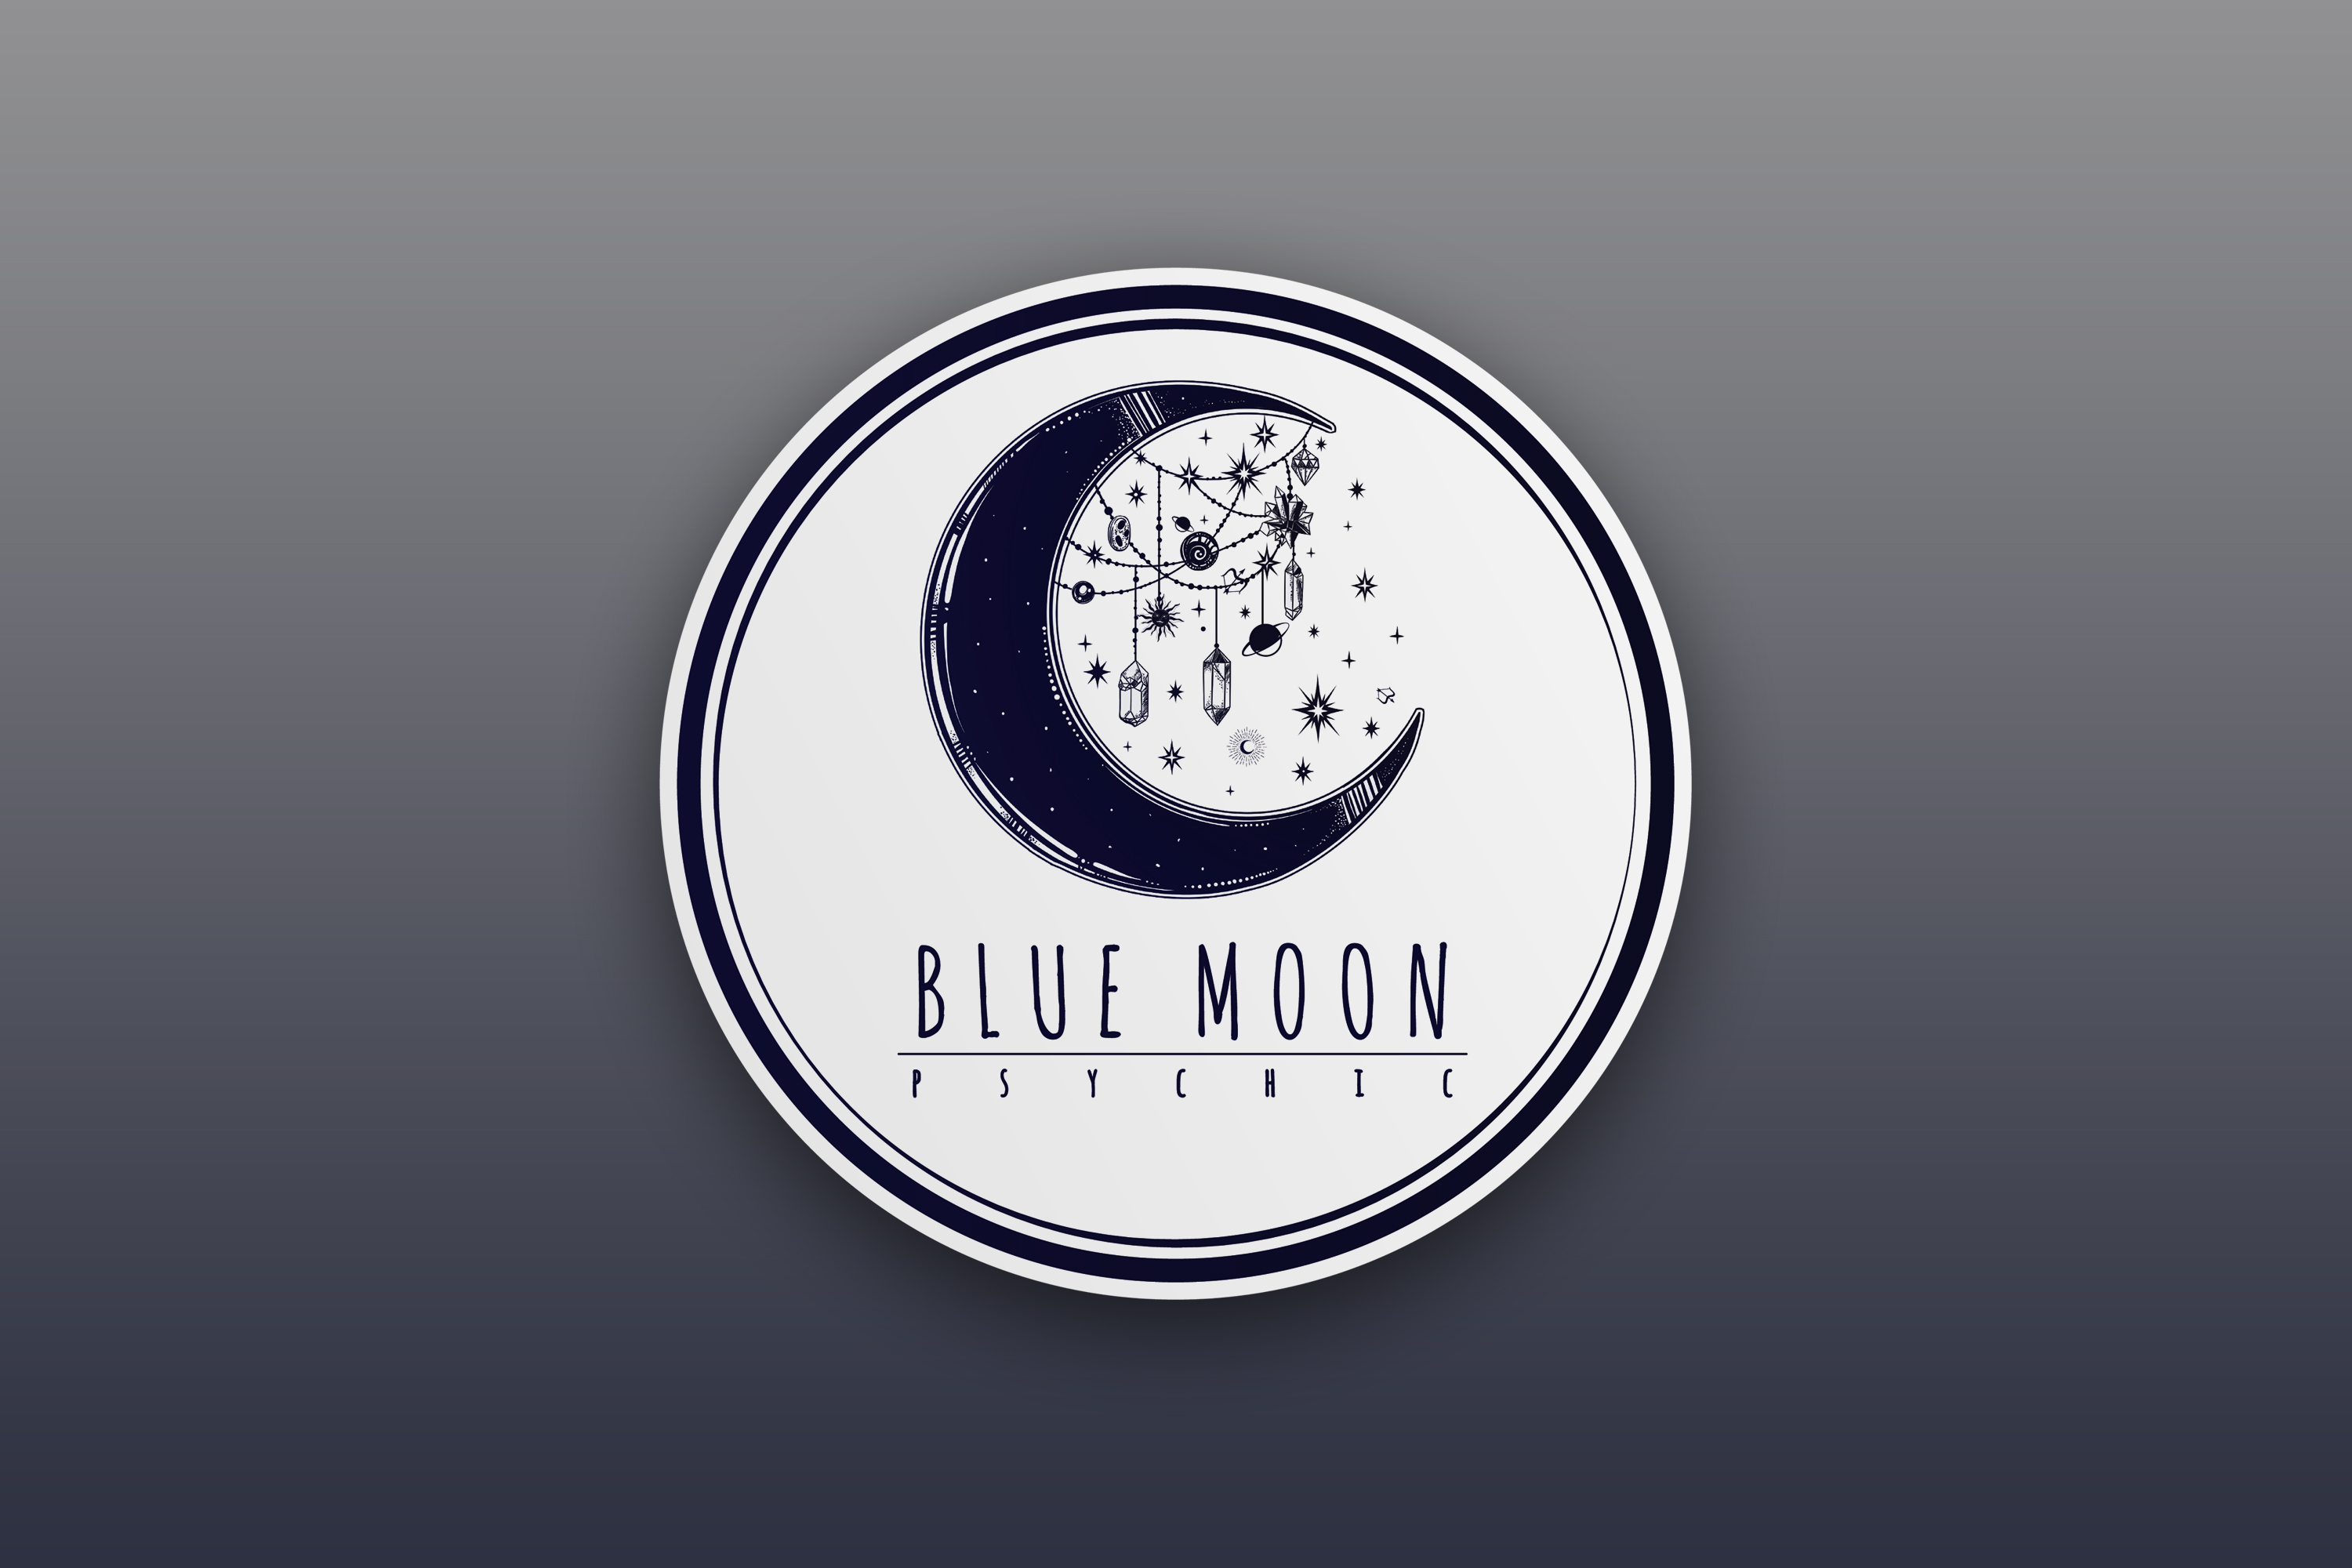 BLUEMOON SPIRITUAL WELL-BEING